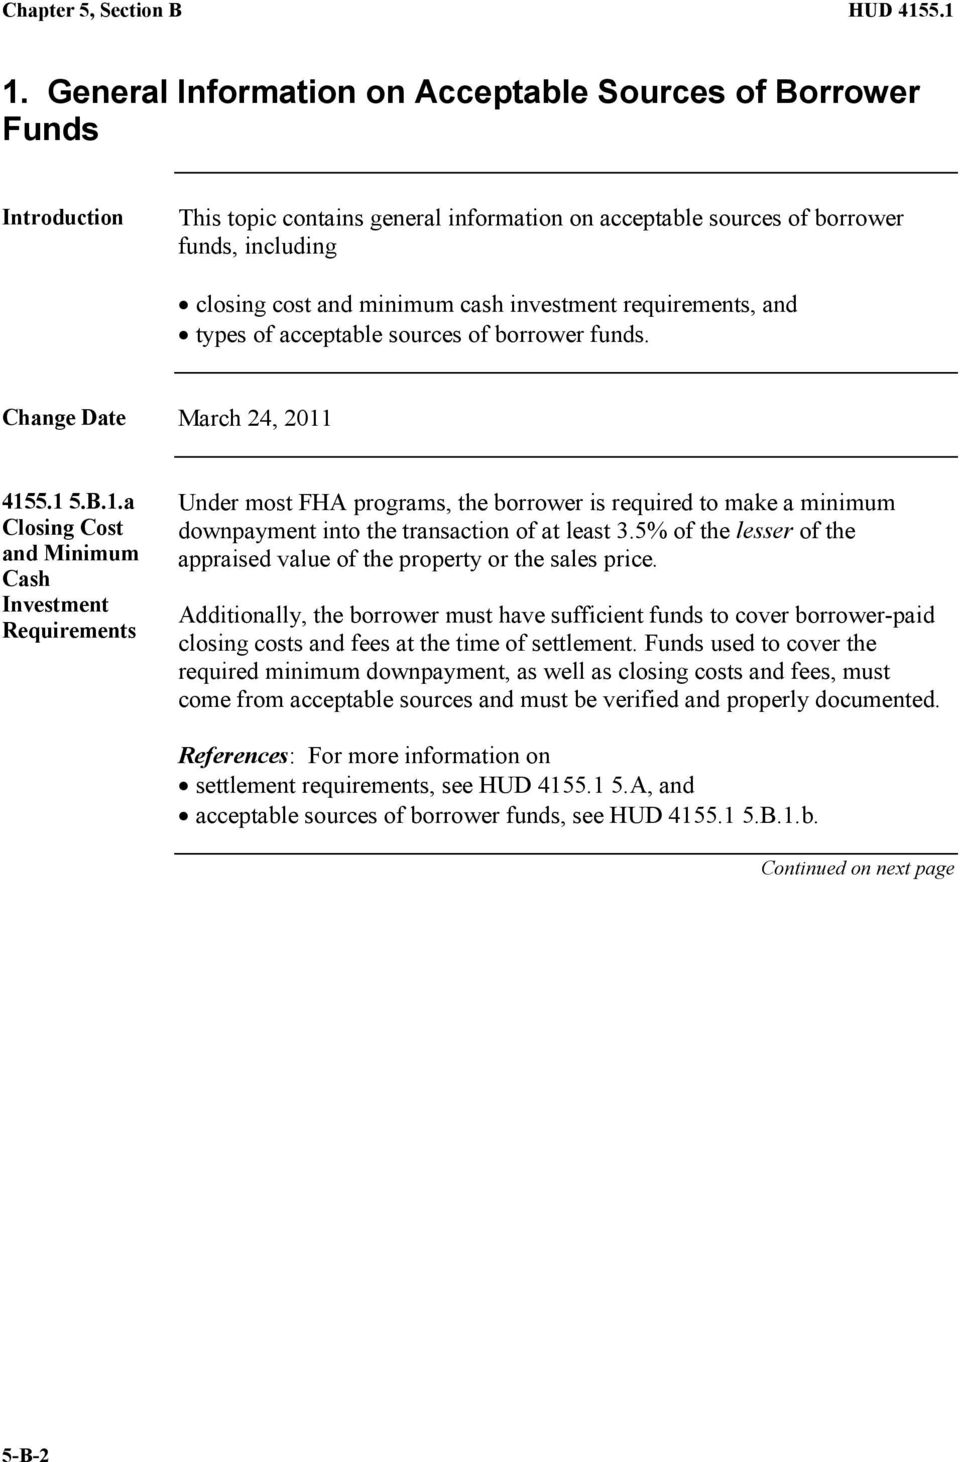 investment requirements, and types of acceptable sources of borrower funds. Change Date March 24, 2011